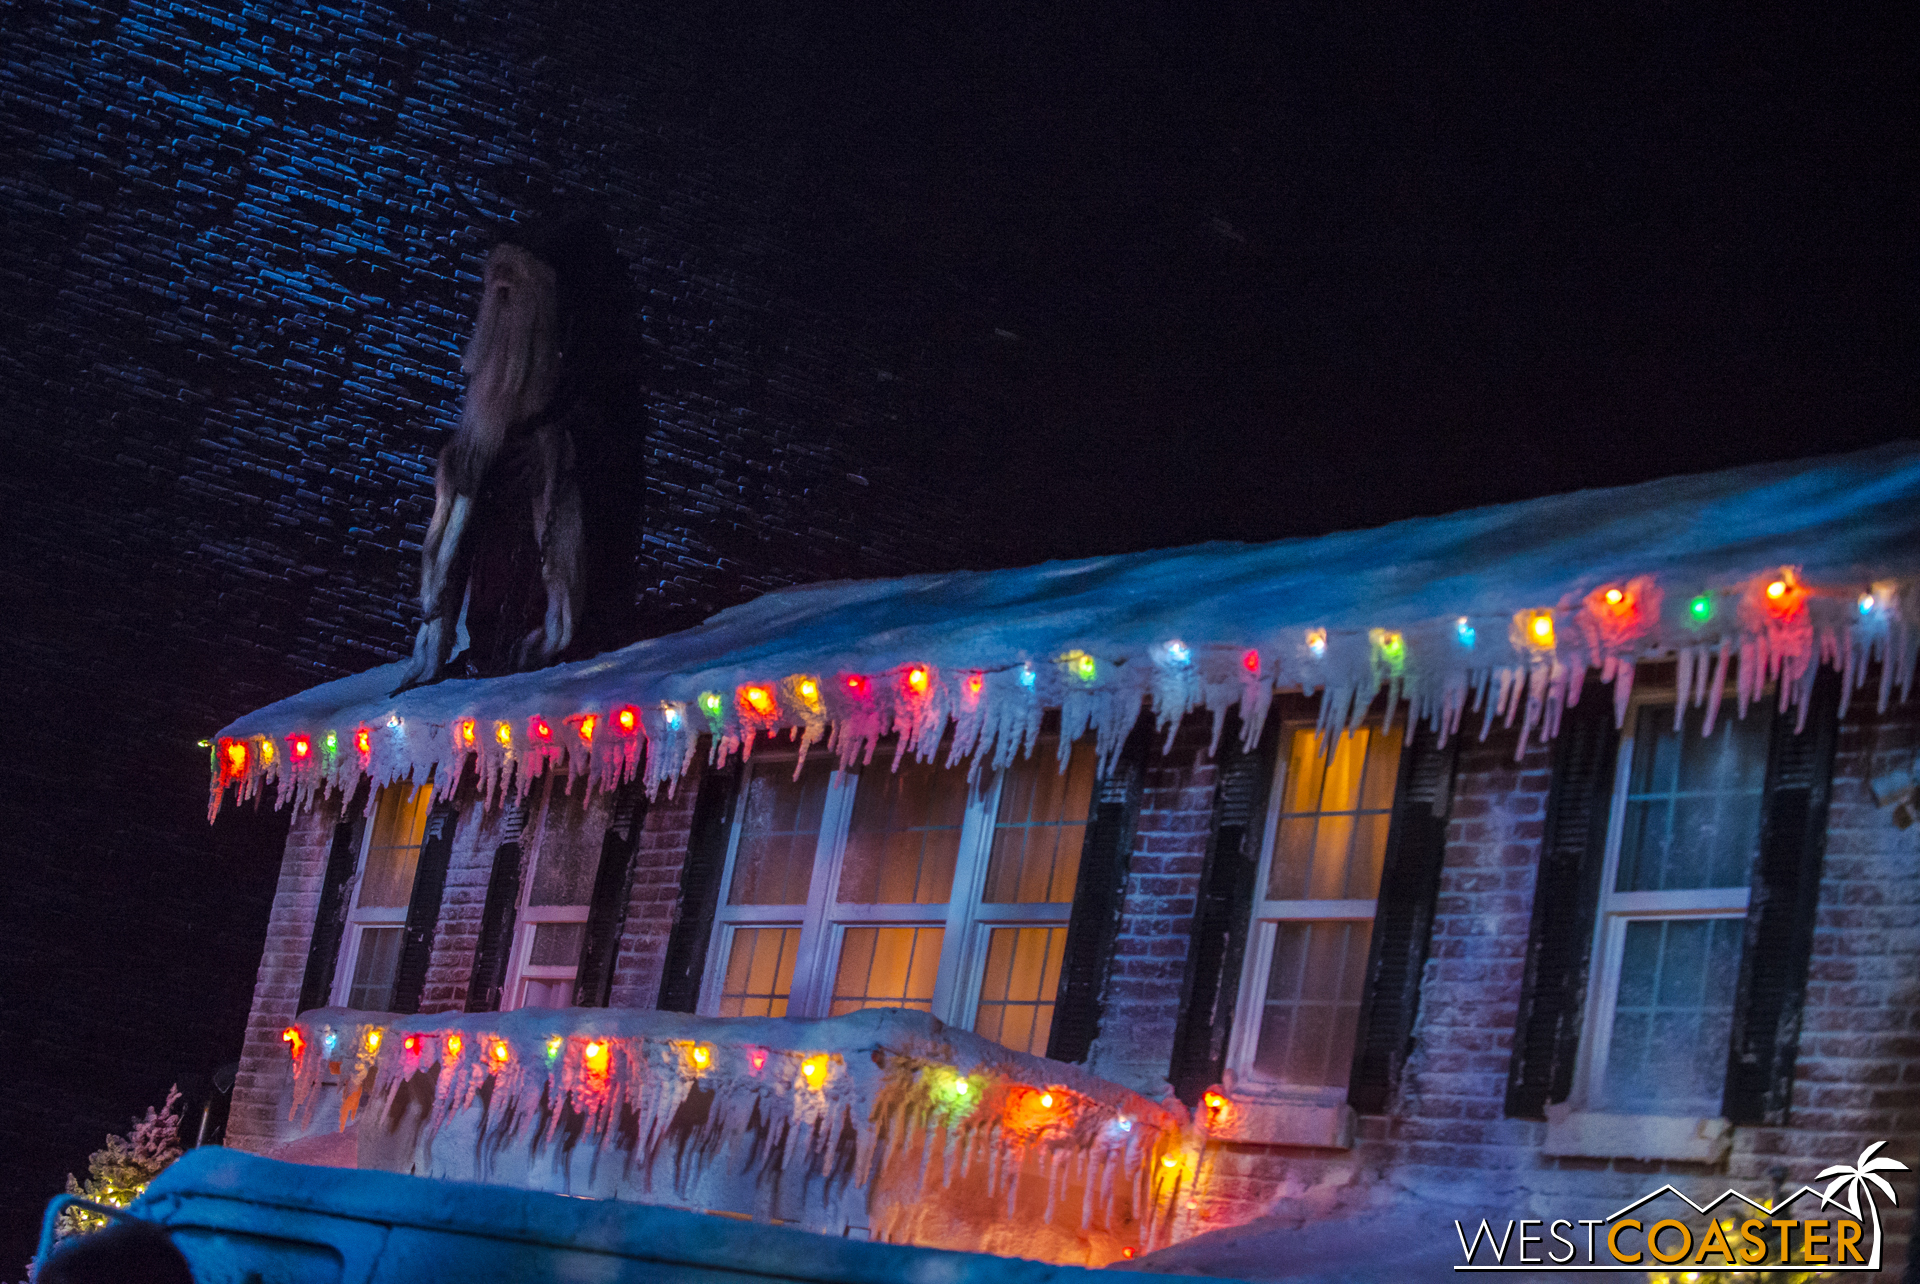 Ont he heels of the Dark Christmas scare zone from 2014 and 2015 comes Krampus.